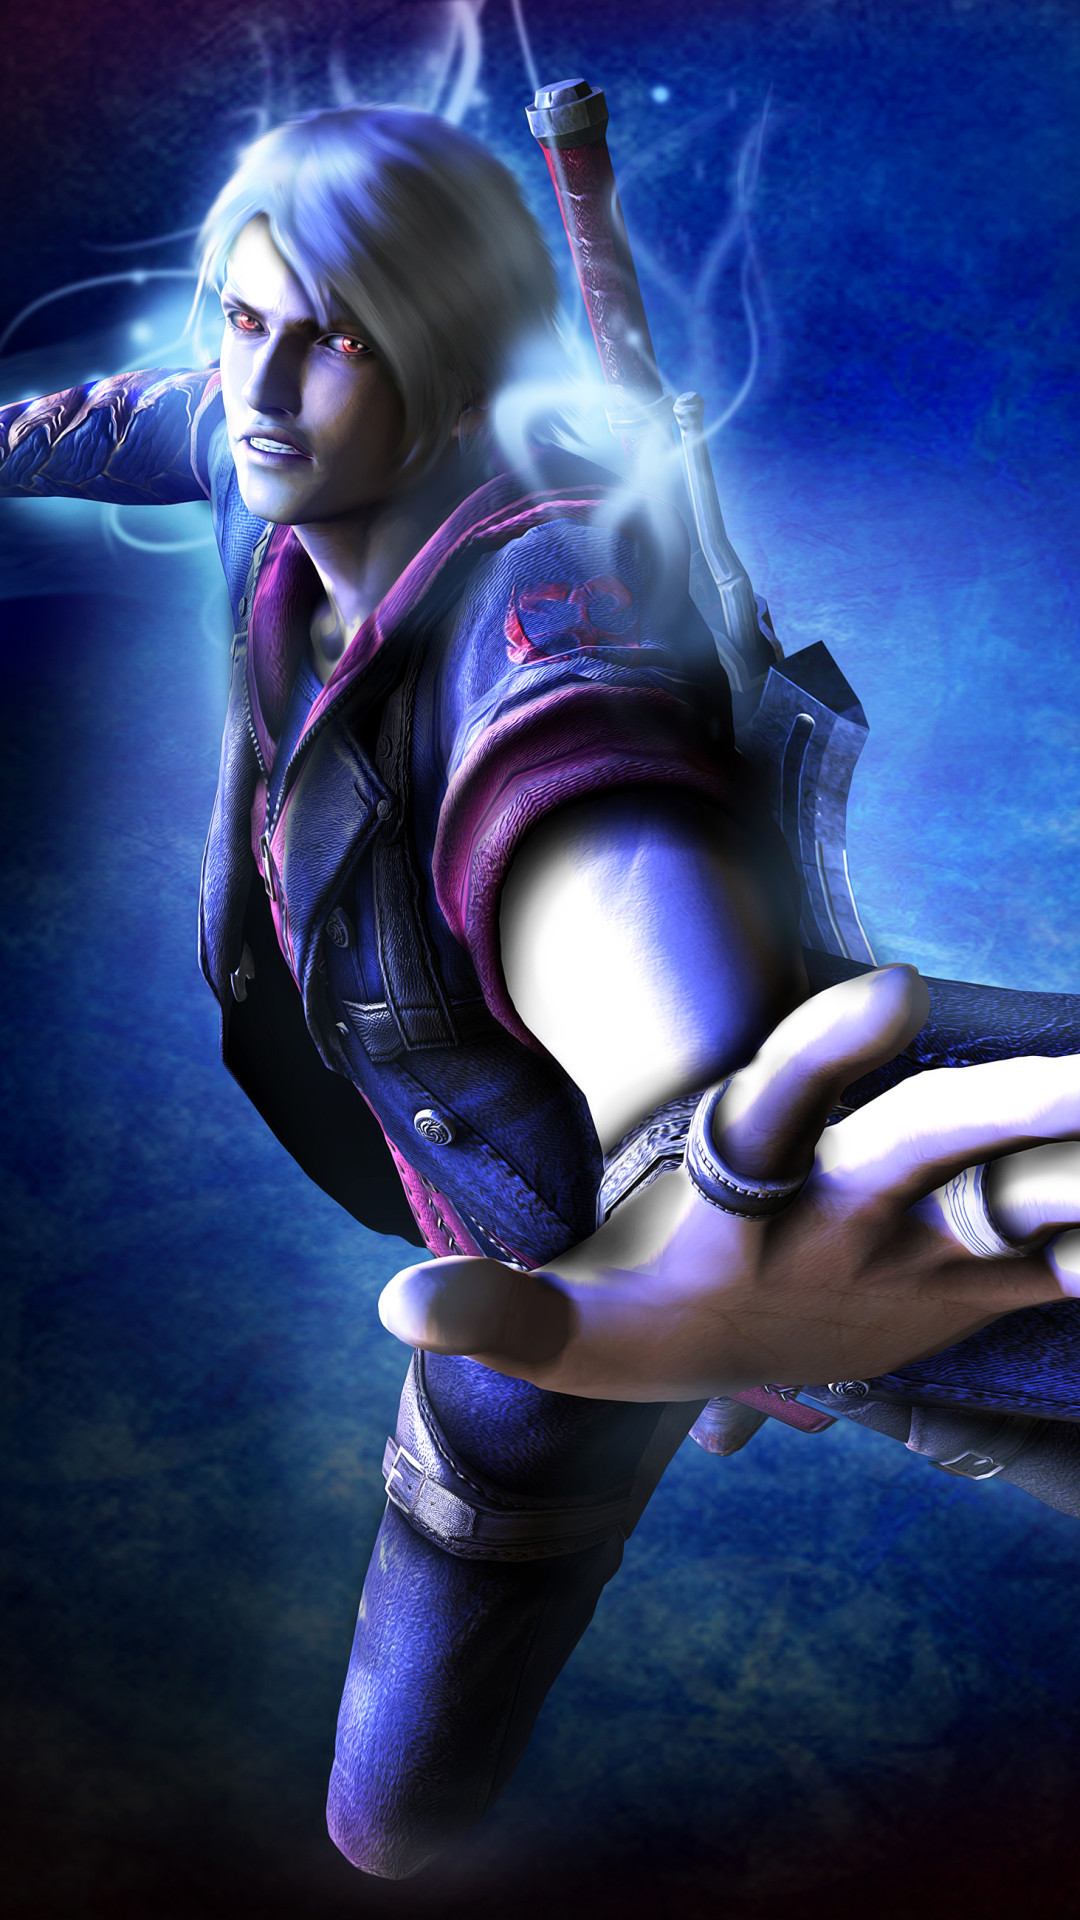 Devil May Cry 4 Wallpaper (73+ pictures)